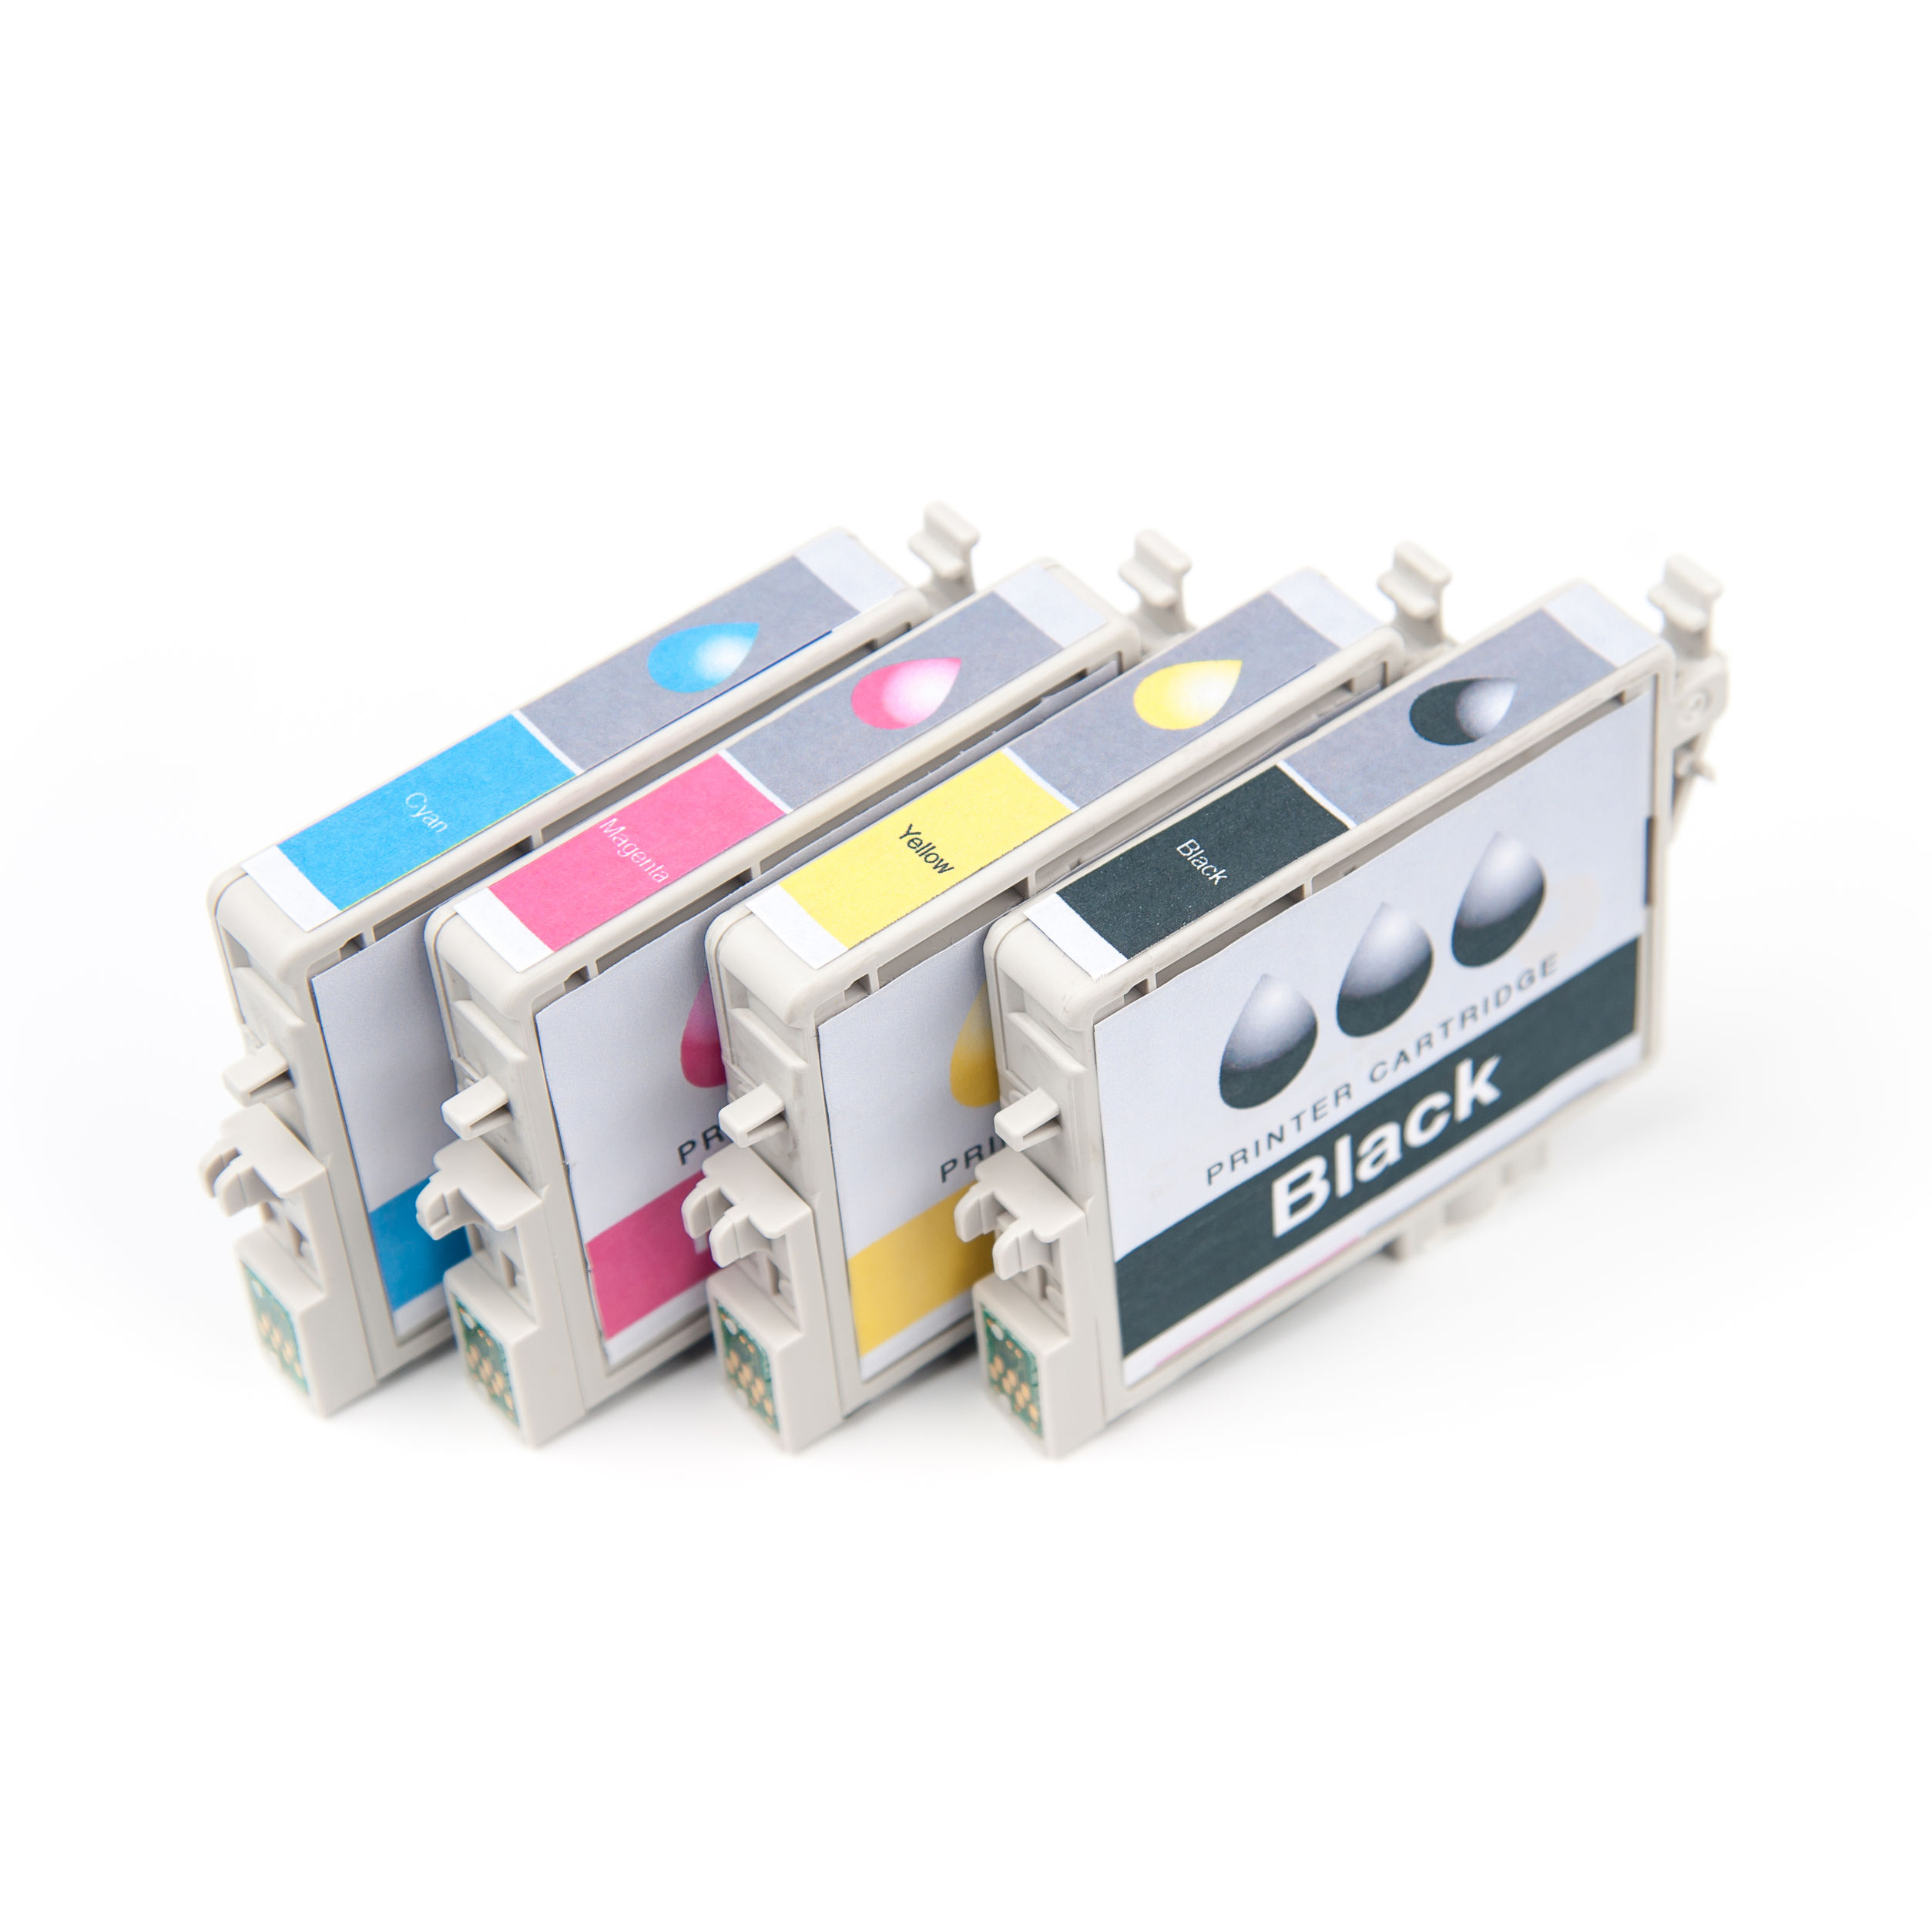 Compatible to Canon 5226B005 / CL541XL Printhead color